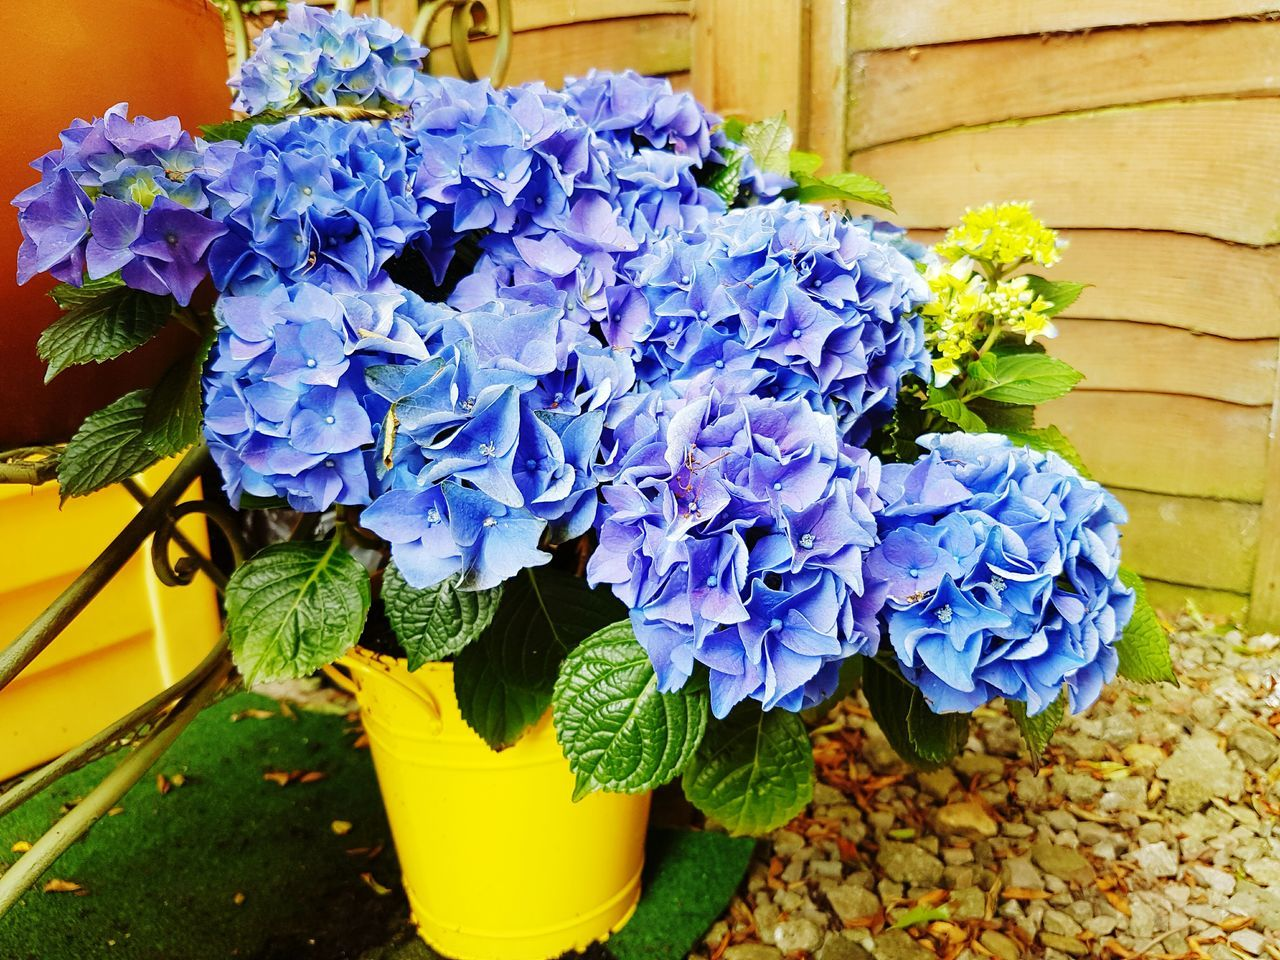 Acidic beauty Flower Plant Nature Growth Potted Plant Beauty In Nature No People Fragility Blue Flower Pot Freshness Flower Head Day Outdoors Close-up Hydrangea Hydrangeas Hydrangea In Bloom Hydrangea Flower Hydrangea Blue Blue Hydrangea Blue Flower Blue Flowers Bucket Yellow